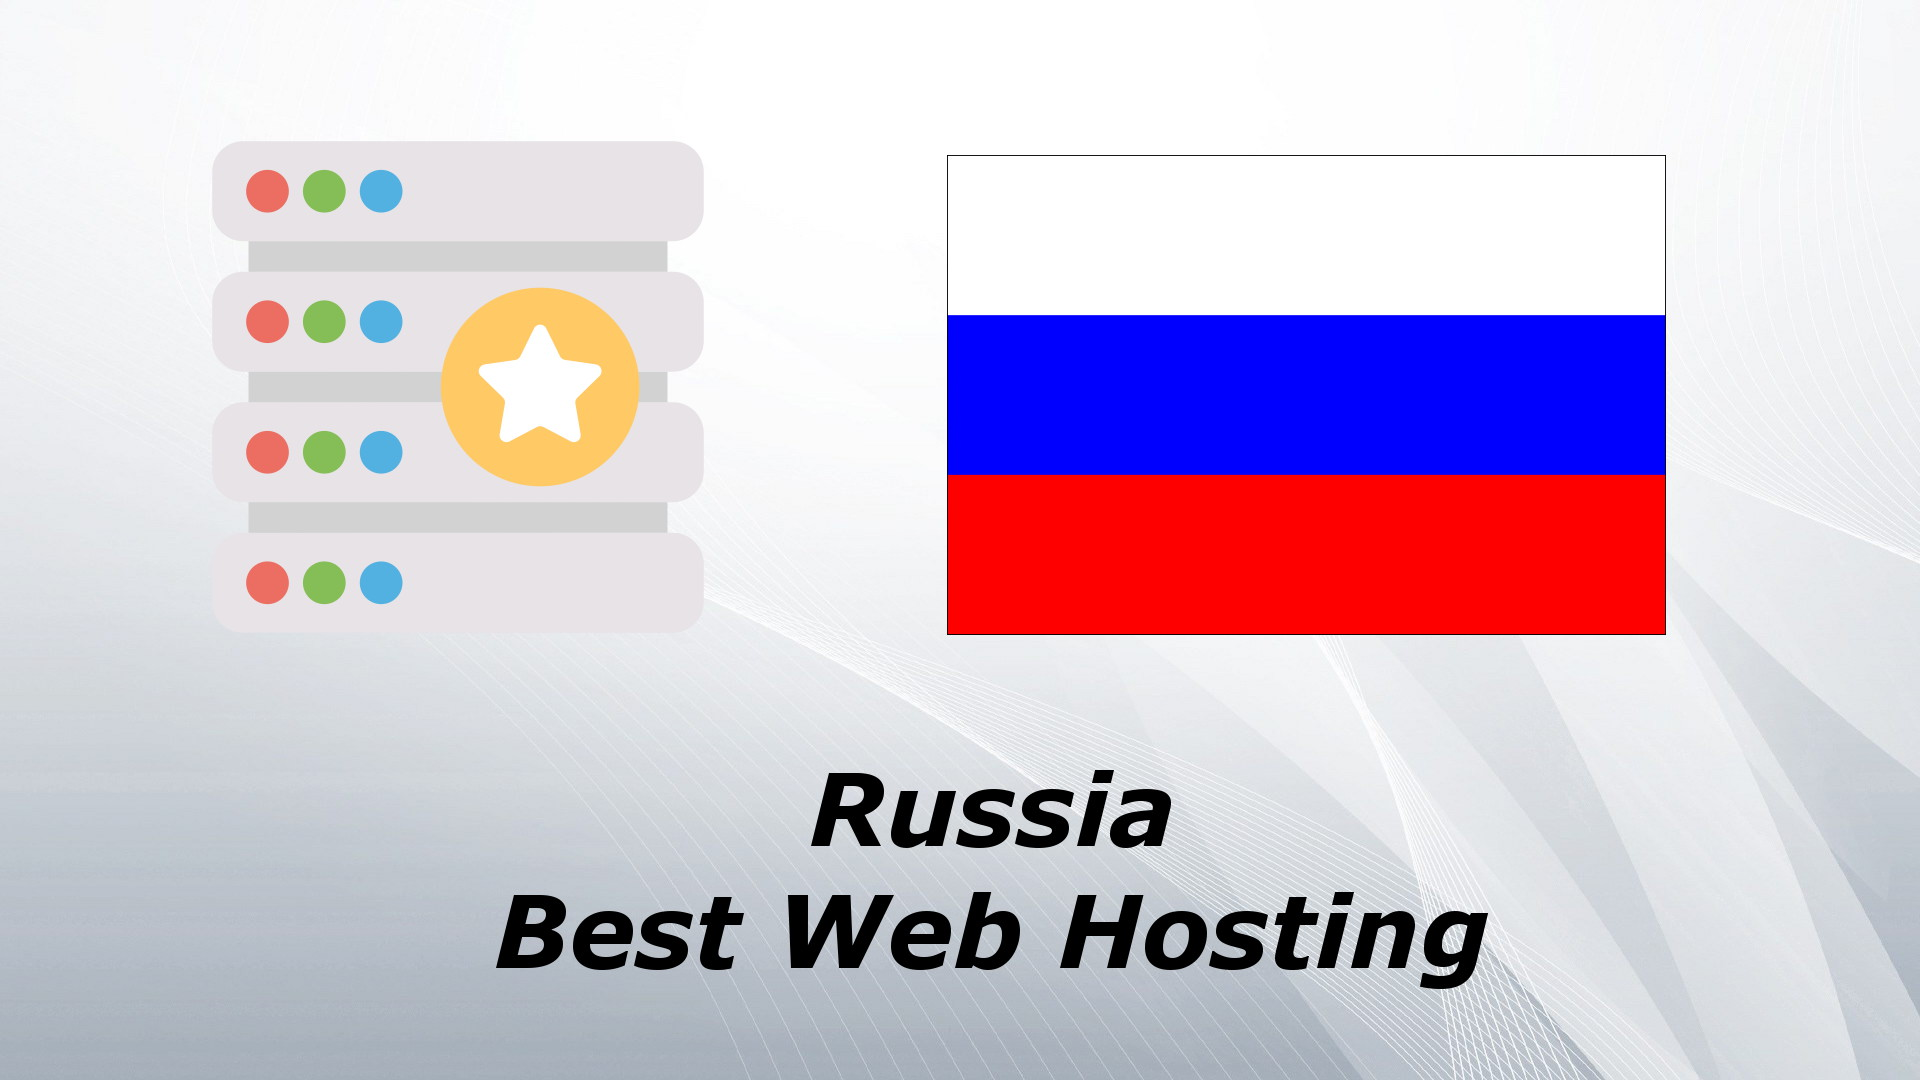 Russia Best Web Hosting